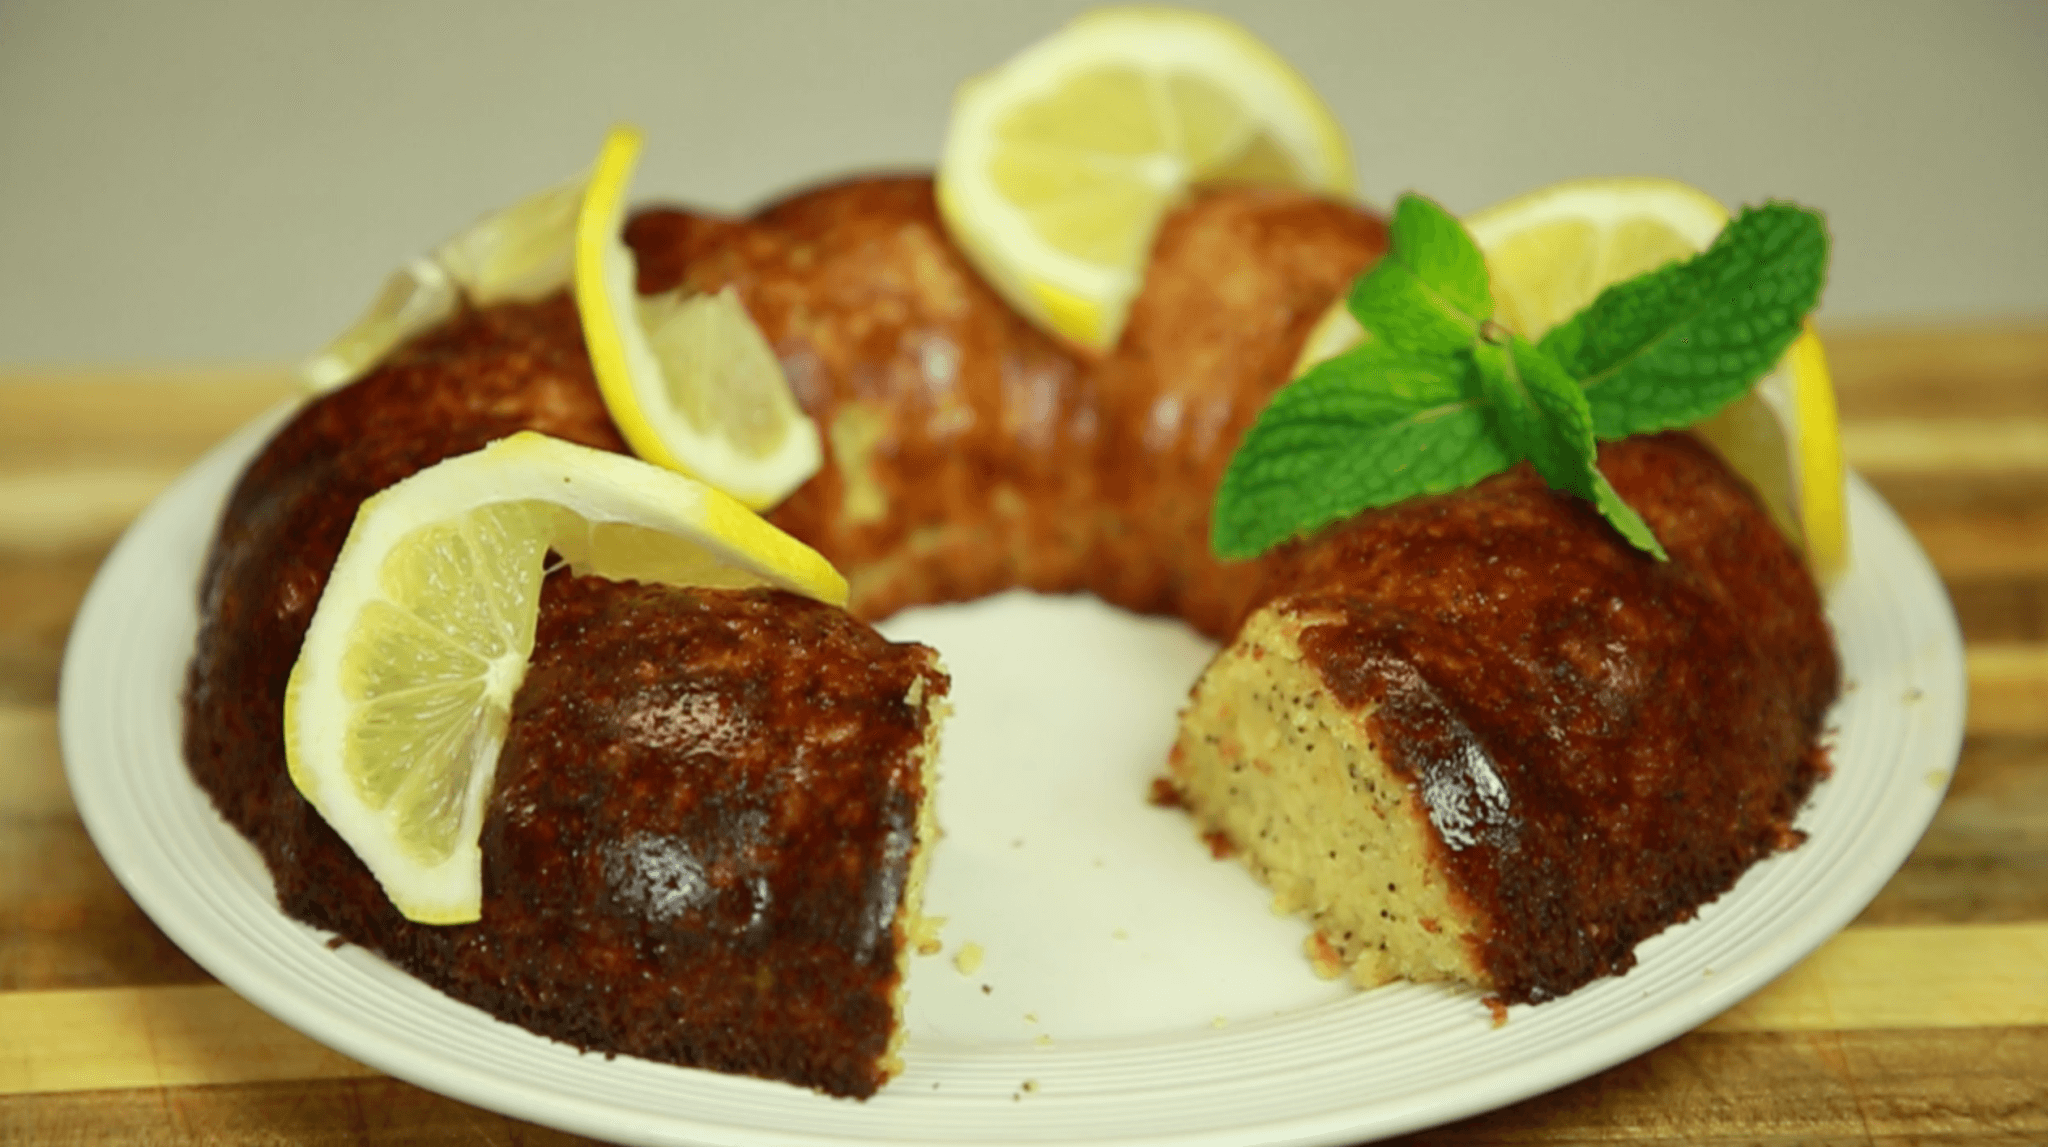 Dr. Gundry's Lectin-Free Lemon Poppy Coffee Cake